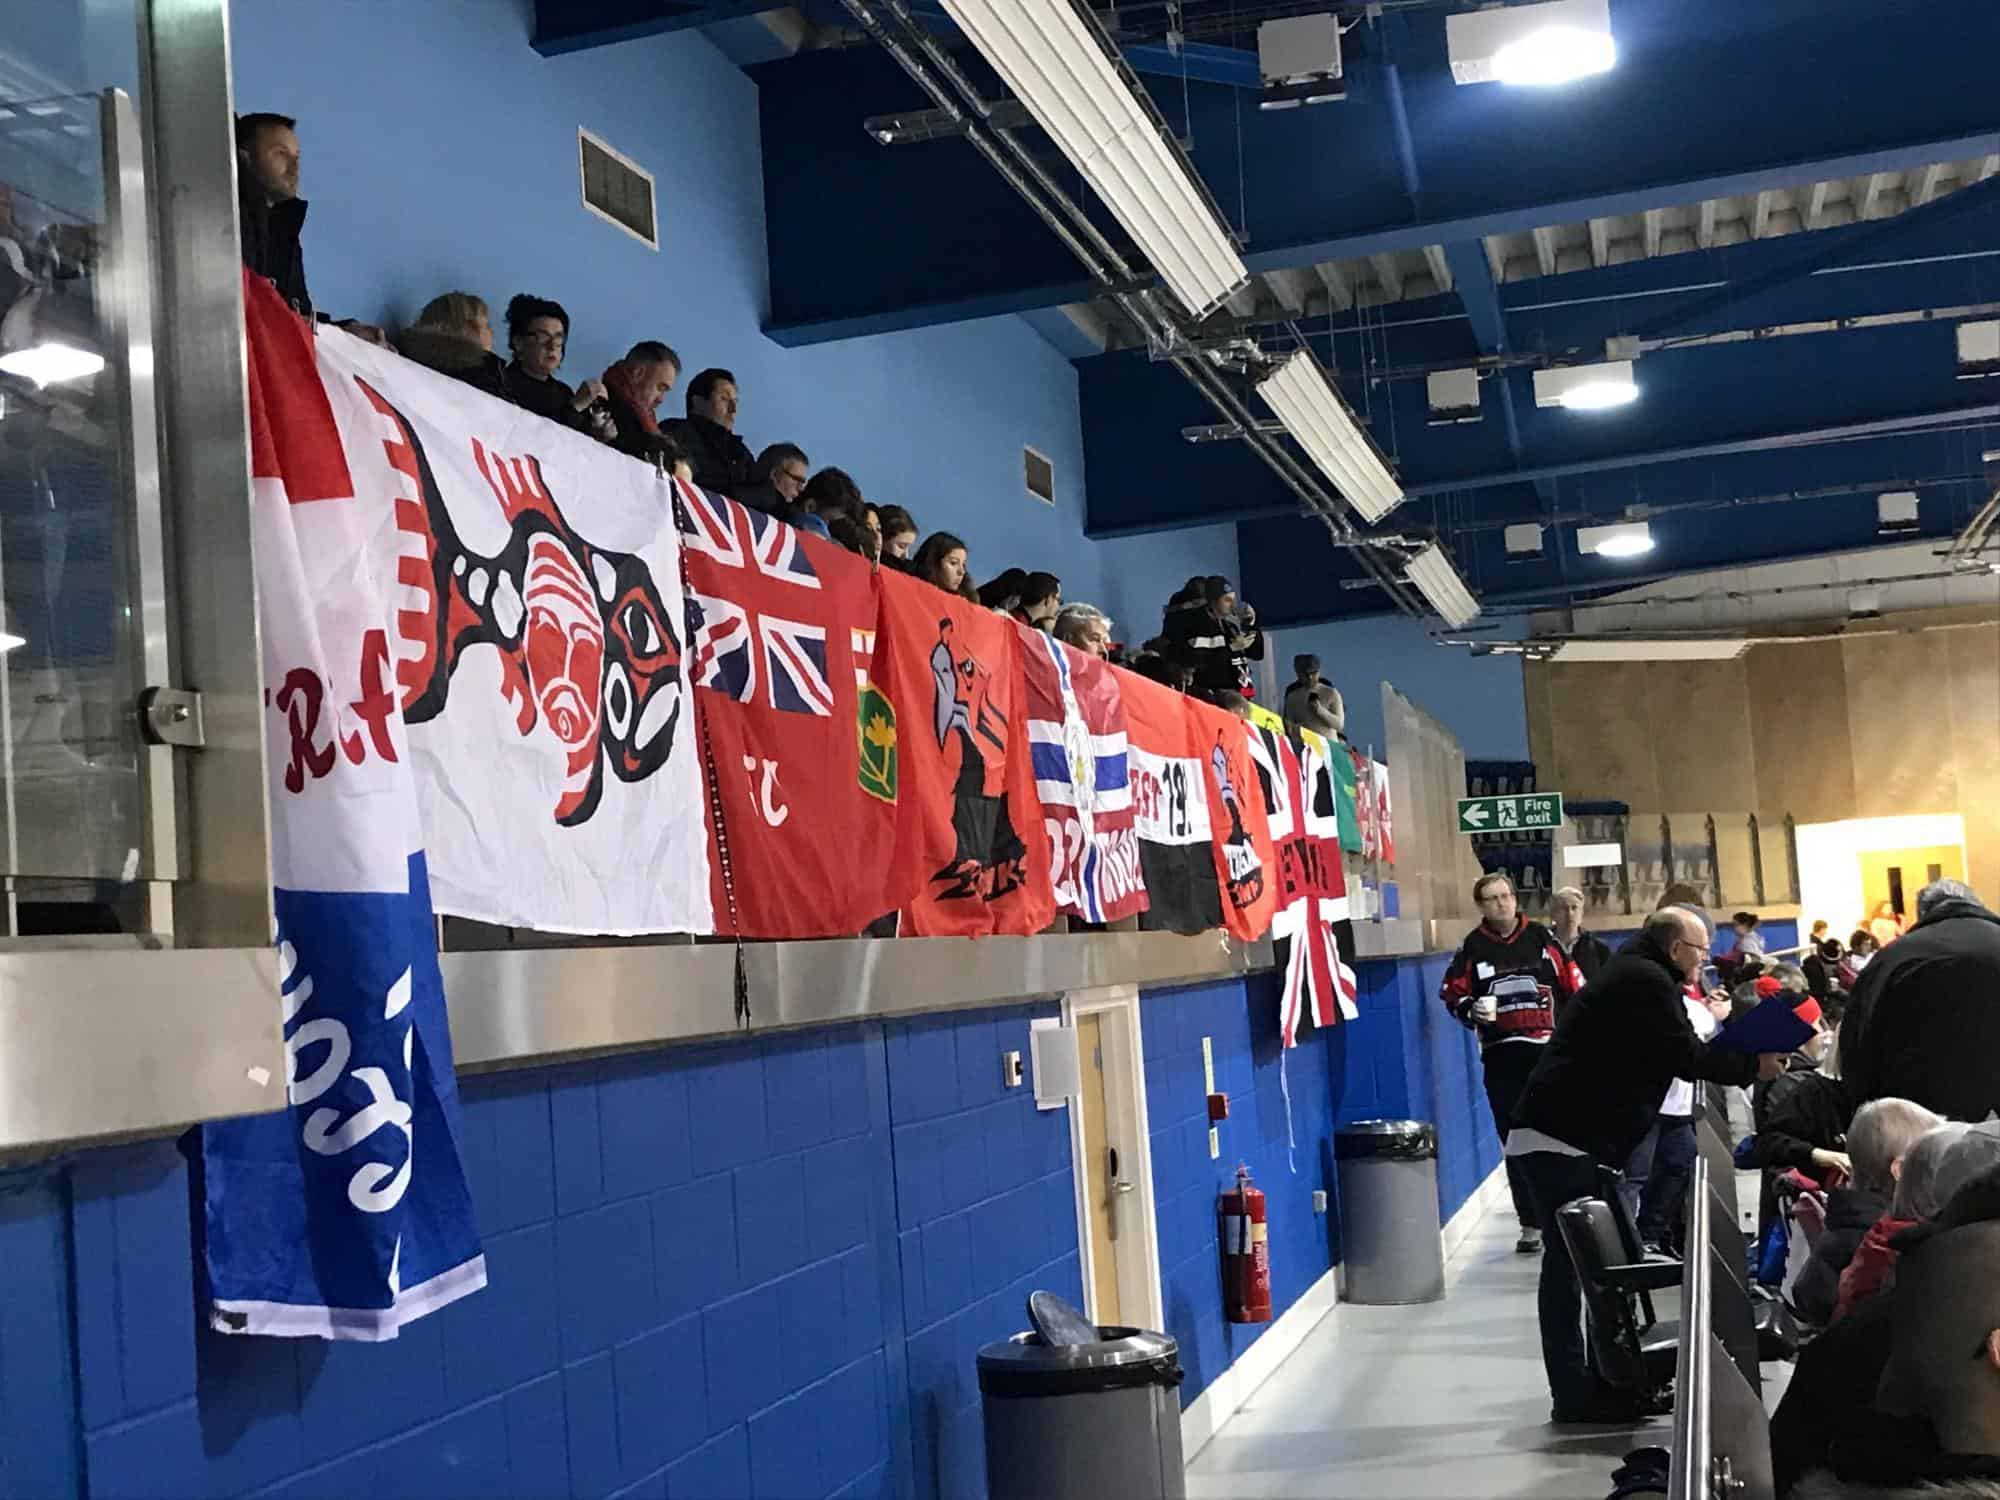 Streatham Redhawks ice hockey fans showing off their supporters flags